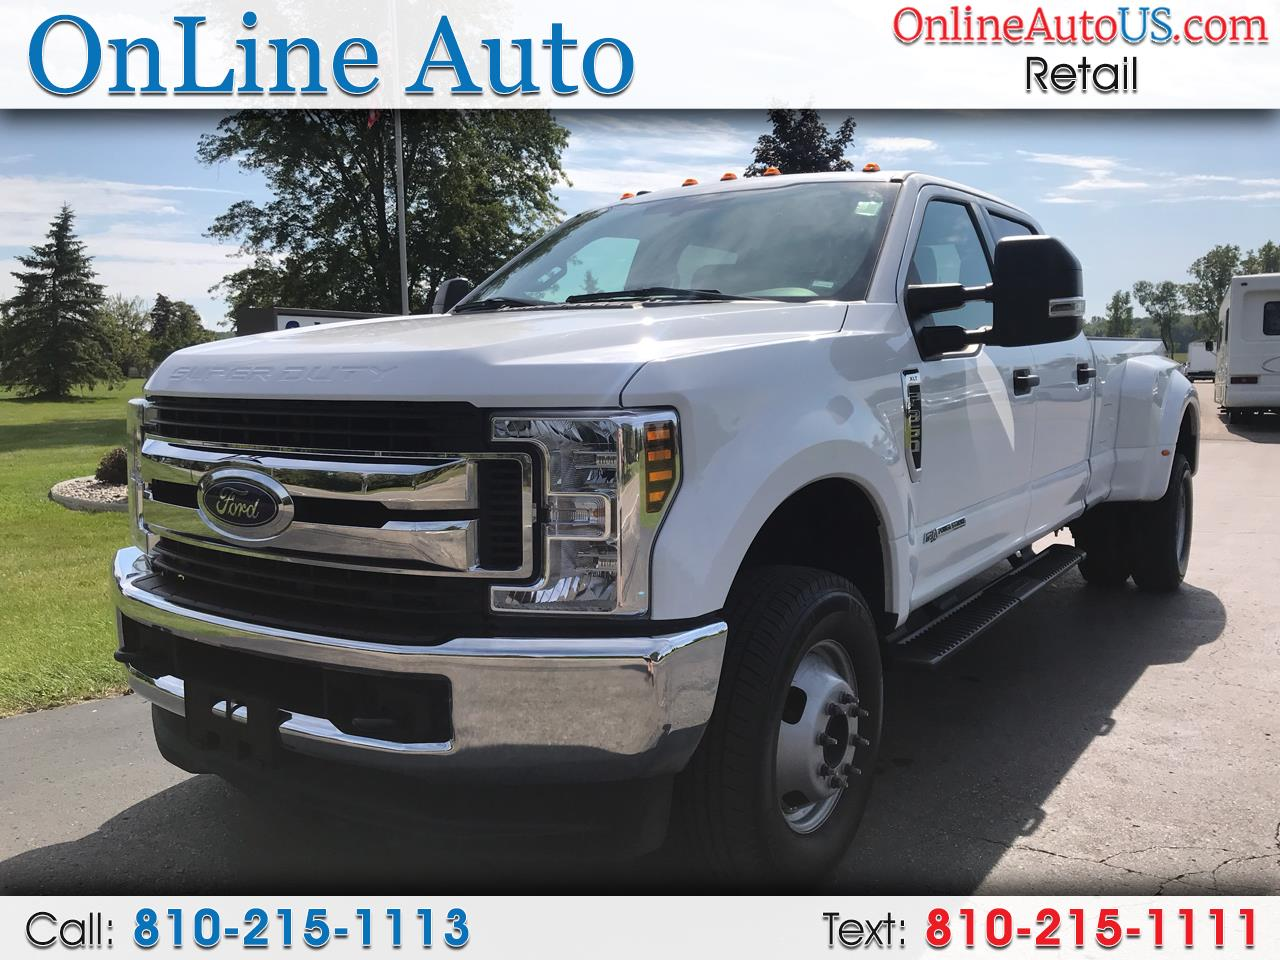 2019 Ford Super Duty F-350 DRW DIESEL CREW CAB 4WD DUALLY